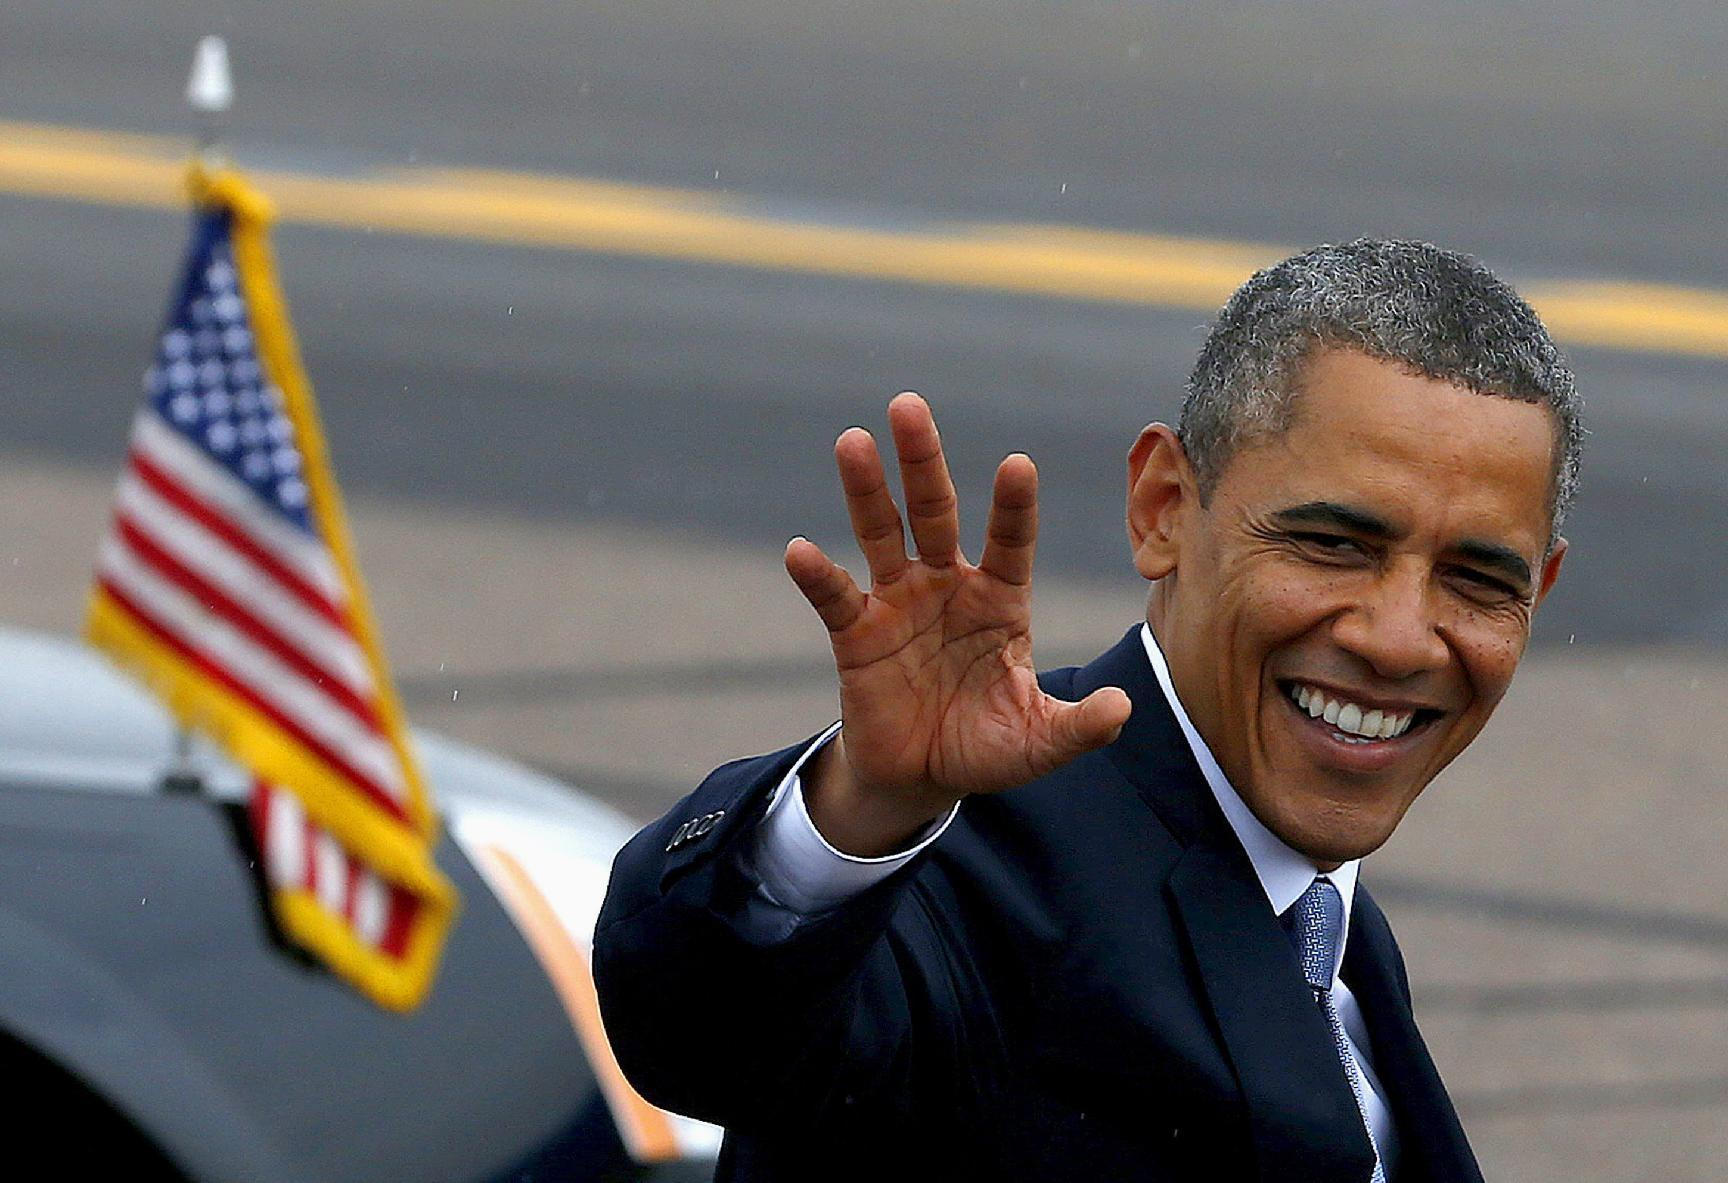 President Barack Obama waves to the crowd as he arrives at Phoenix Sky Harbor International Airport in Phoenix, Tuesday, Aug. 6, 2013, on his way to give a speech on housing and the middle class. (AP Photo/Ross D. Franklin)